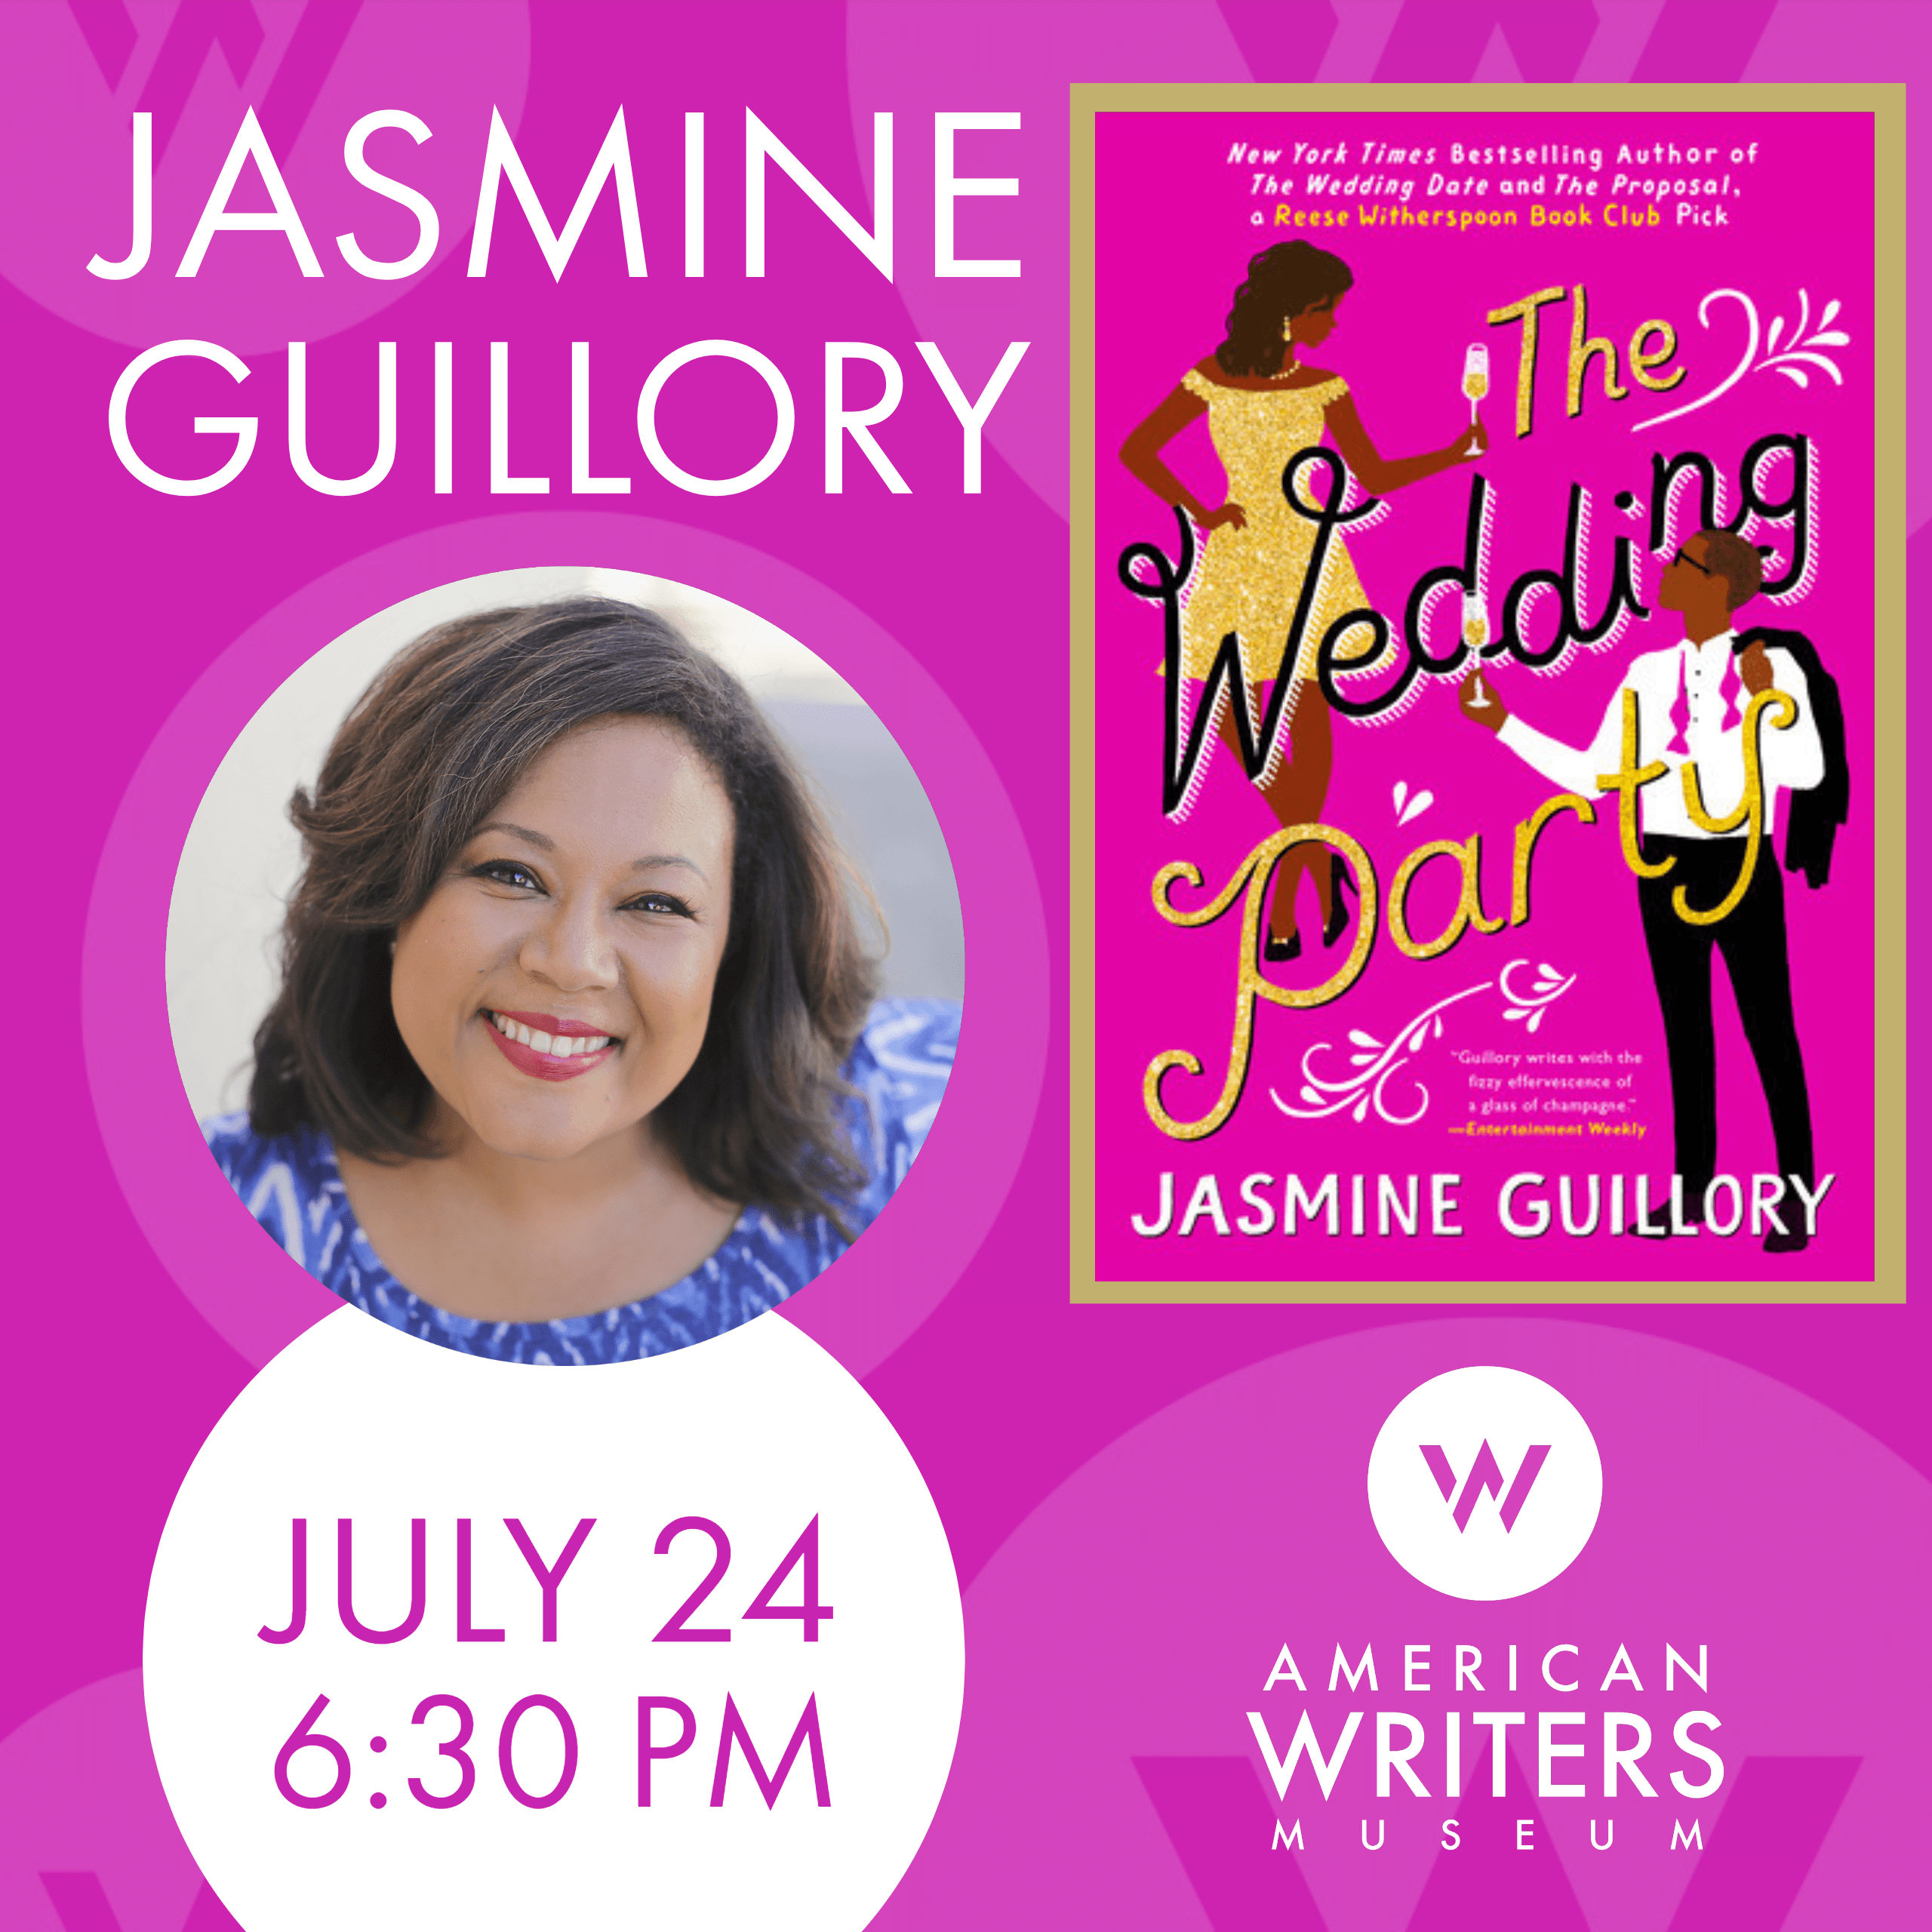 Jasmine Guillory at the American Writers Museum on July 24